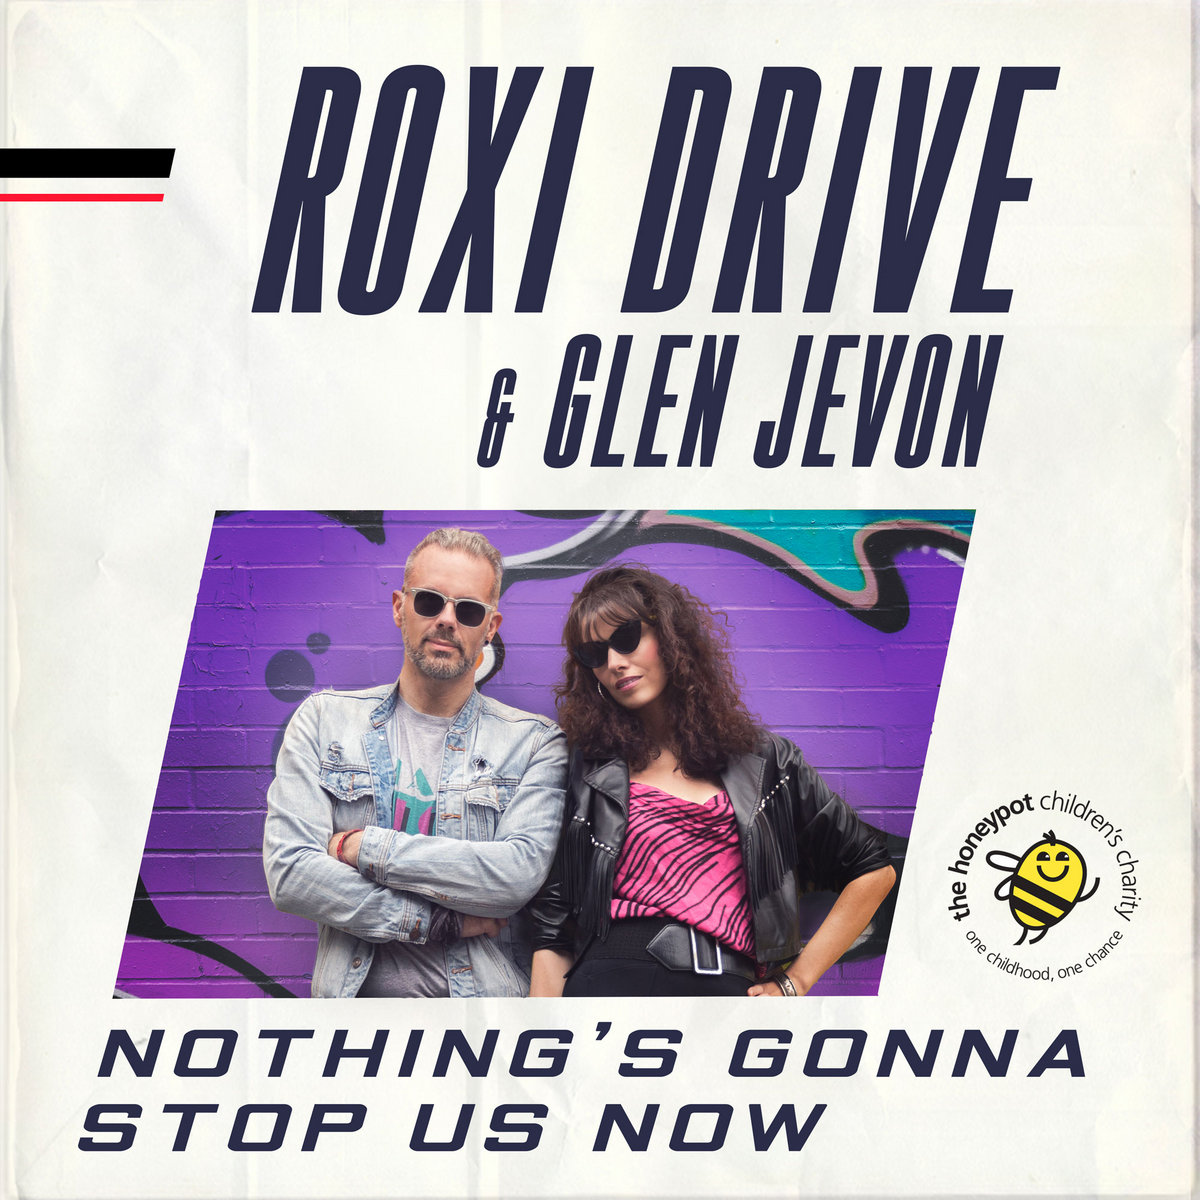 a4179174575 10 - Roxi Drive covers Starship 'Nothing's Gonna Stop Us Now' for Charity